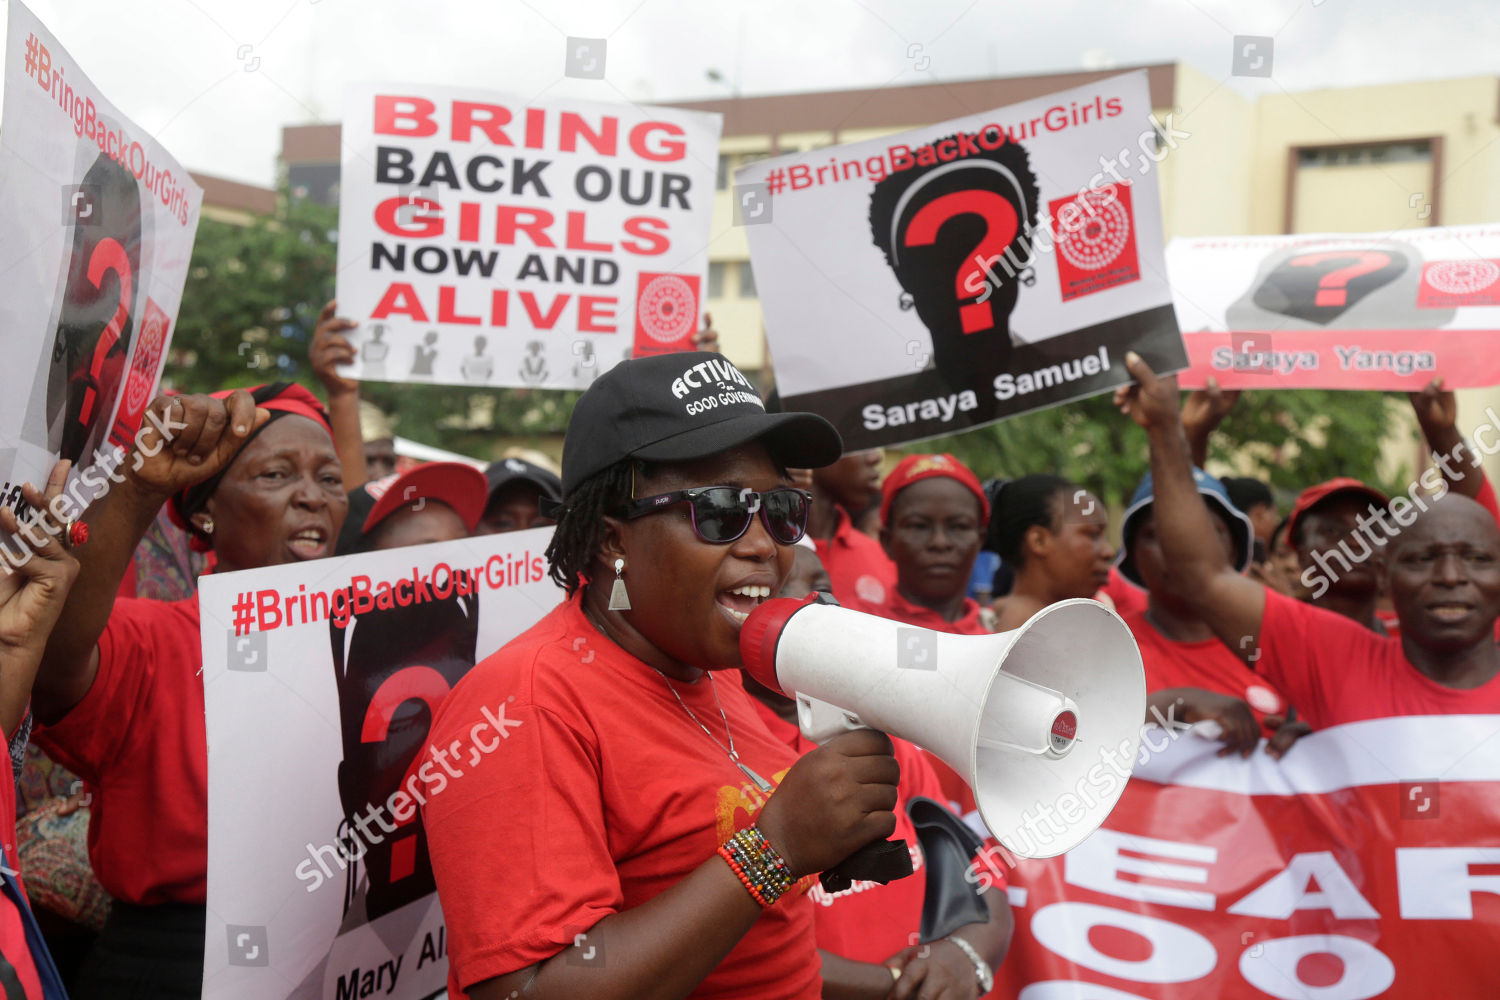 Bring back our girls campaigners chant slogans Editorial Stock Photo